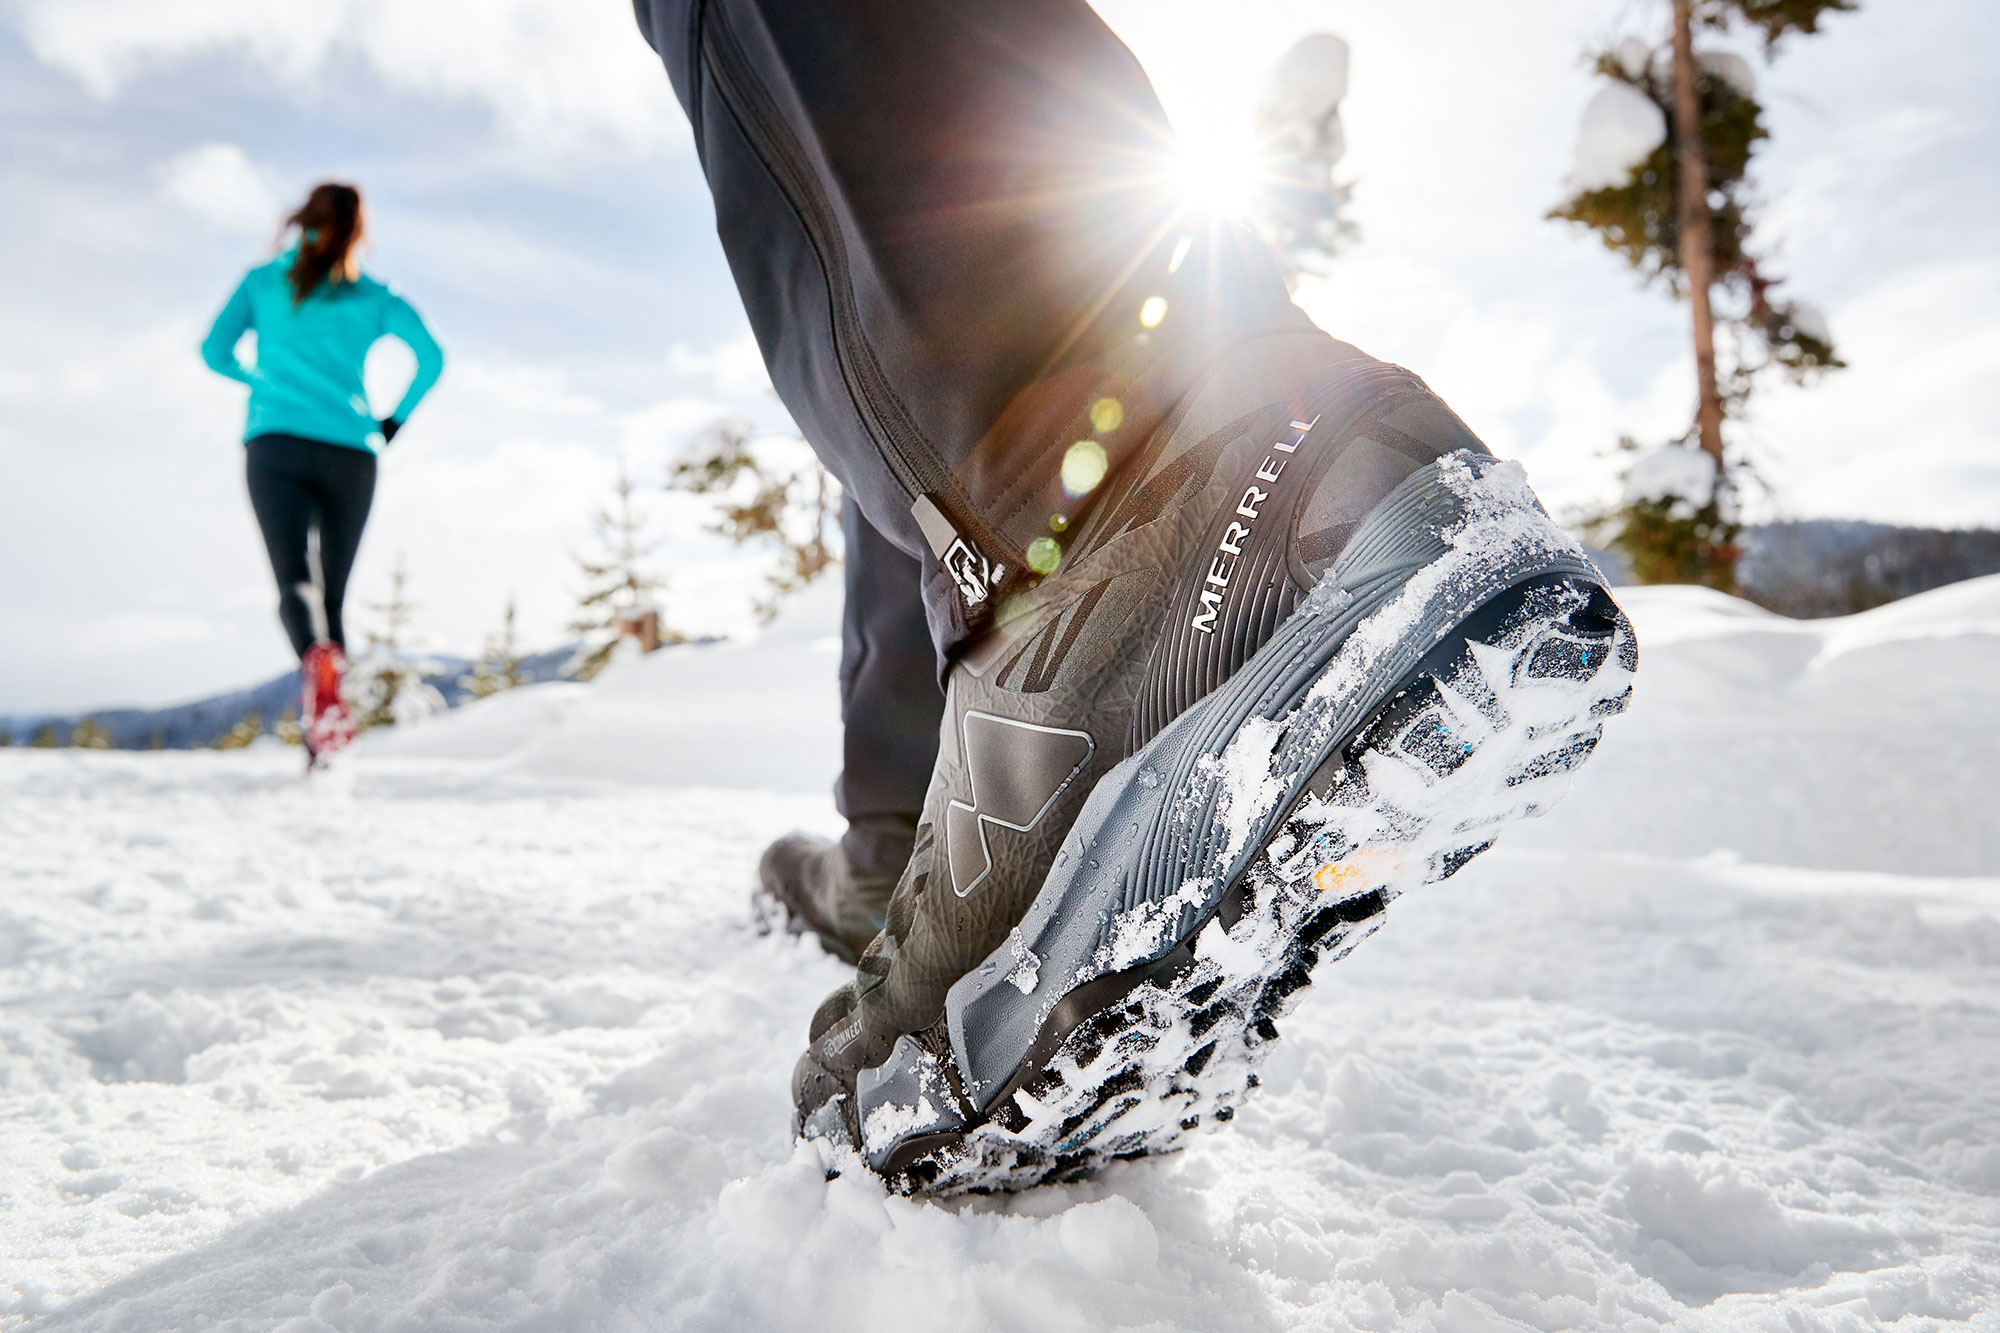 Merrell Sun Valley Campaign shot by Andrew Maguire